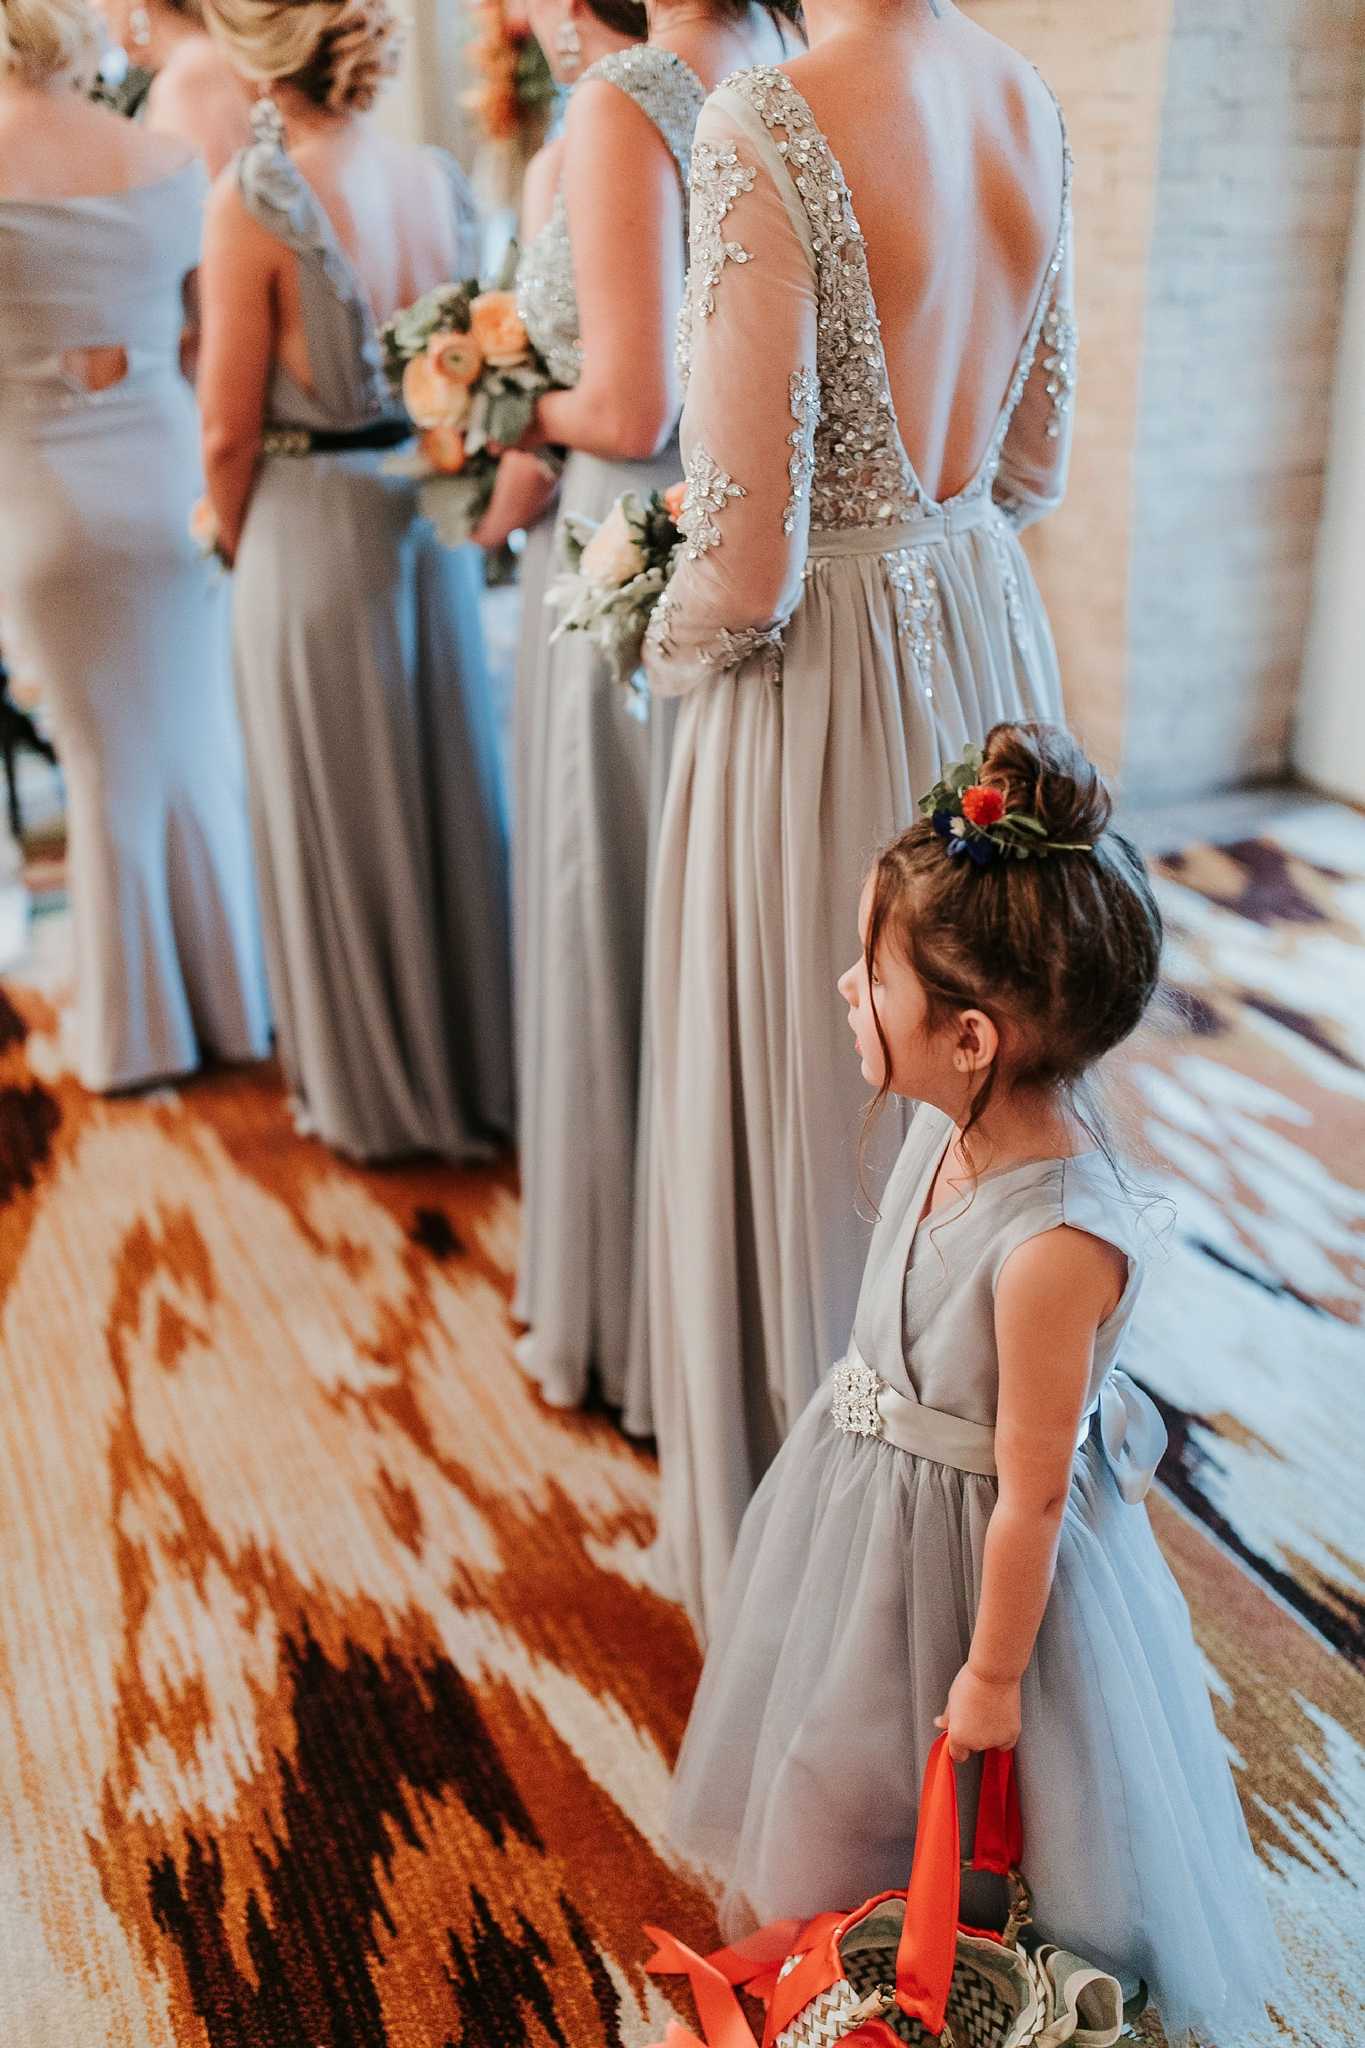 Alicia+lucia+photography+-+albuquerque+wedding+photographer+-+santa+fe+wedding+photography+-+new+mexico+wedding+photographer+-+new+mexico+wedding+-+flower+girl+-+wedding+flower+girl_0015.jpg